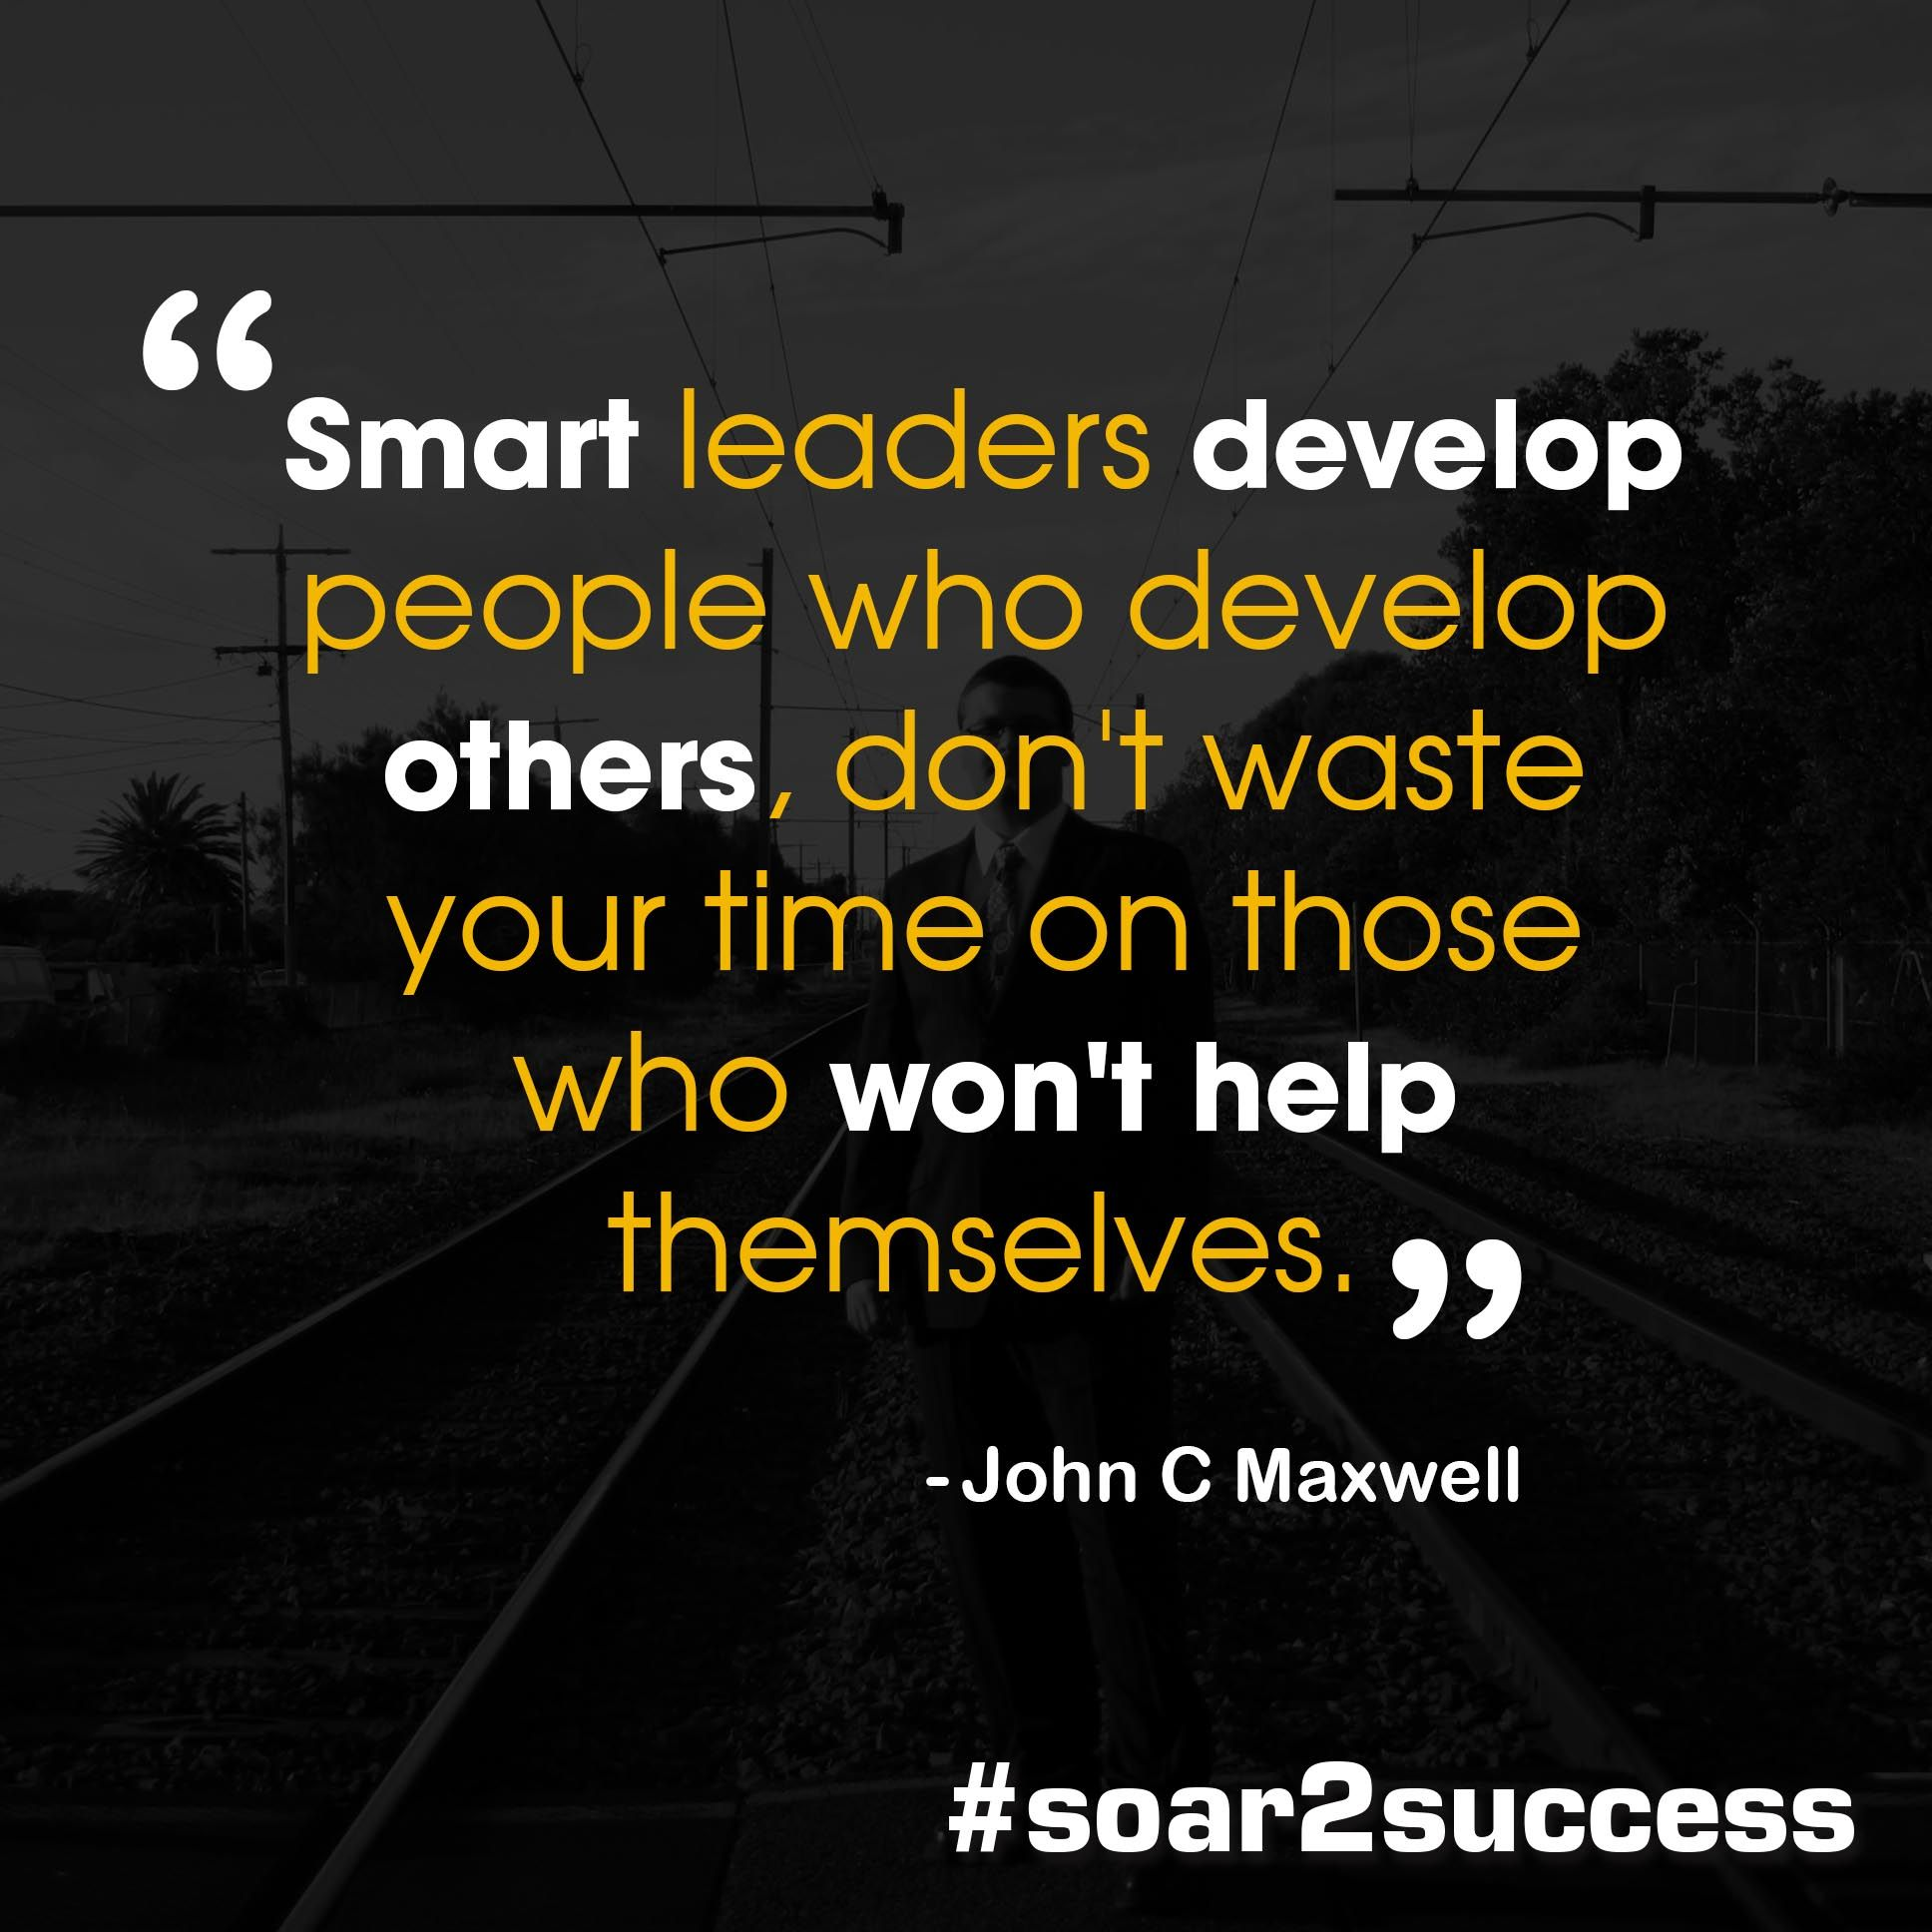 Leaders Quotes Smart Leaders Develop People Who Develop Others Don't Waste Your